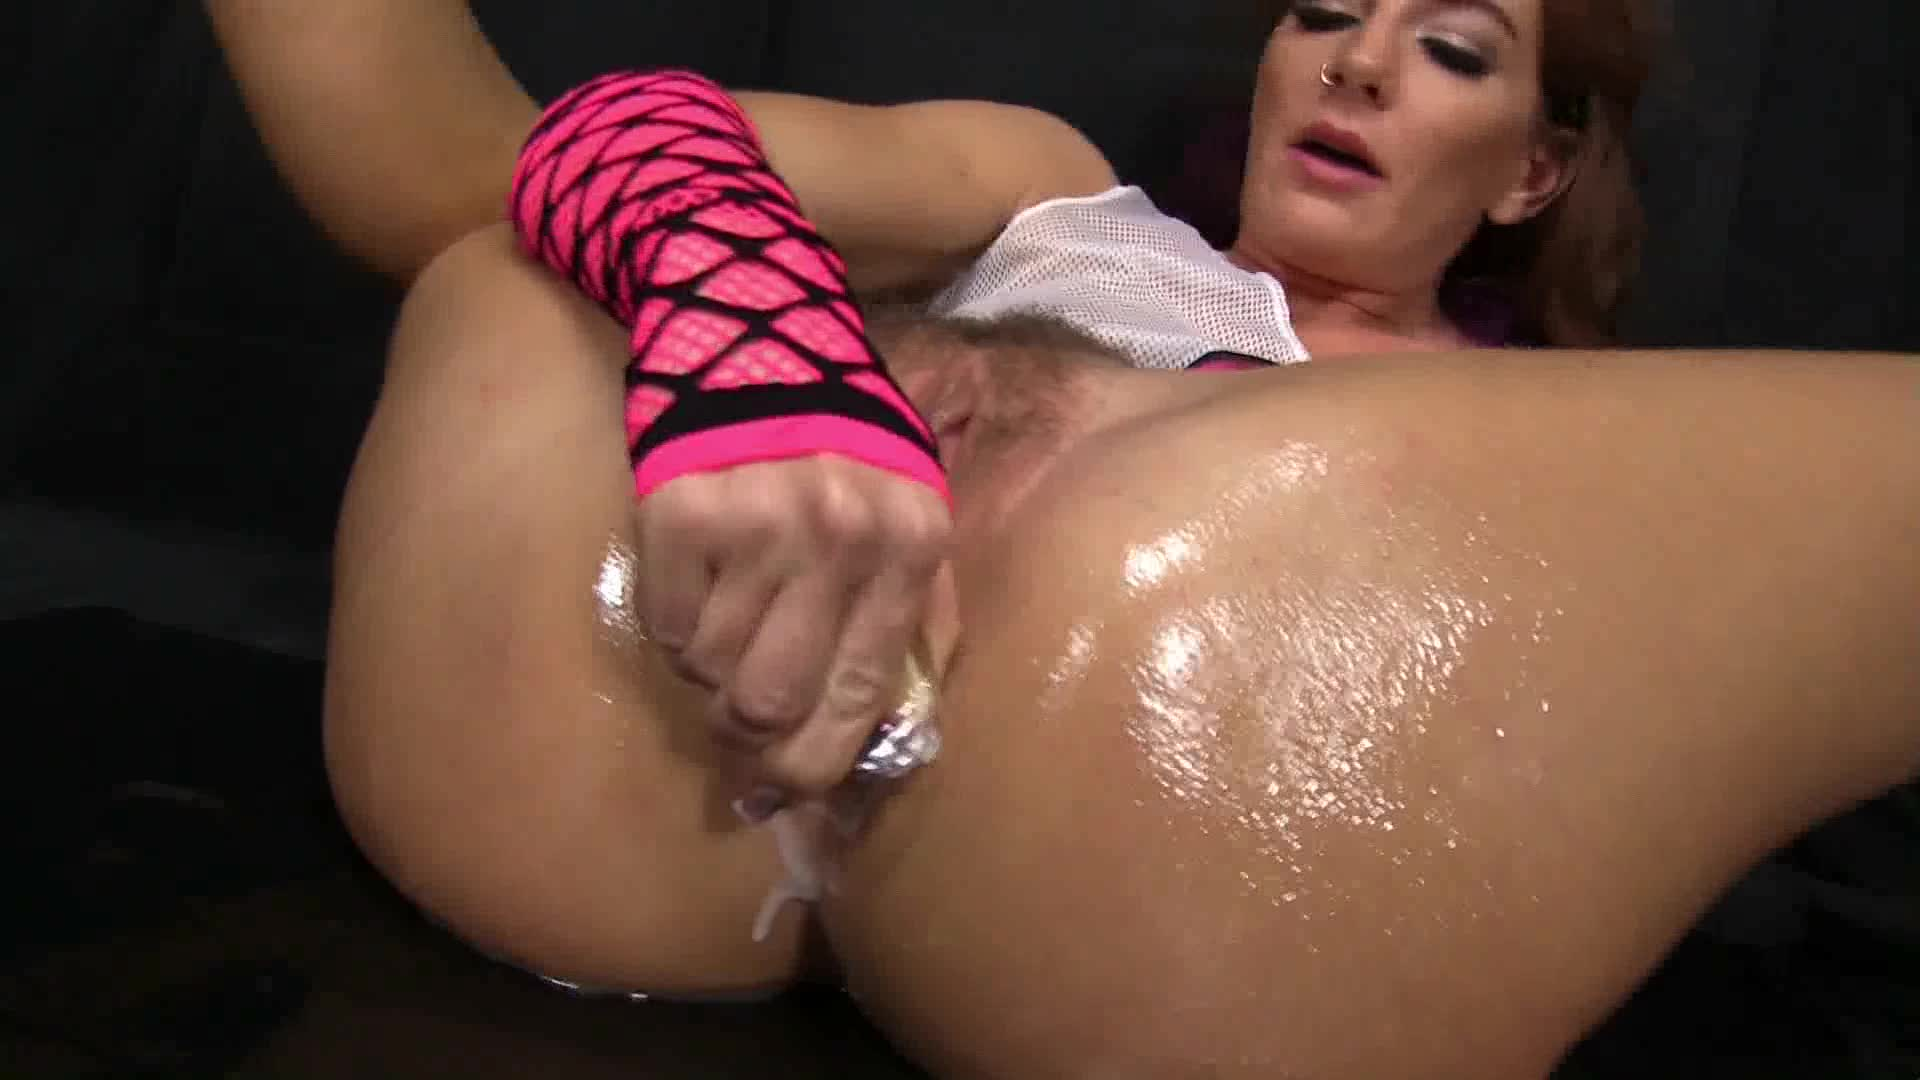 Anal toying squirting videos, very young girl gof